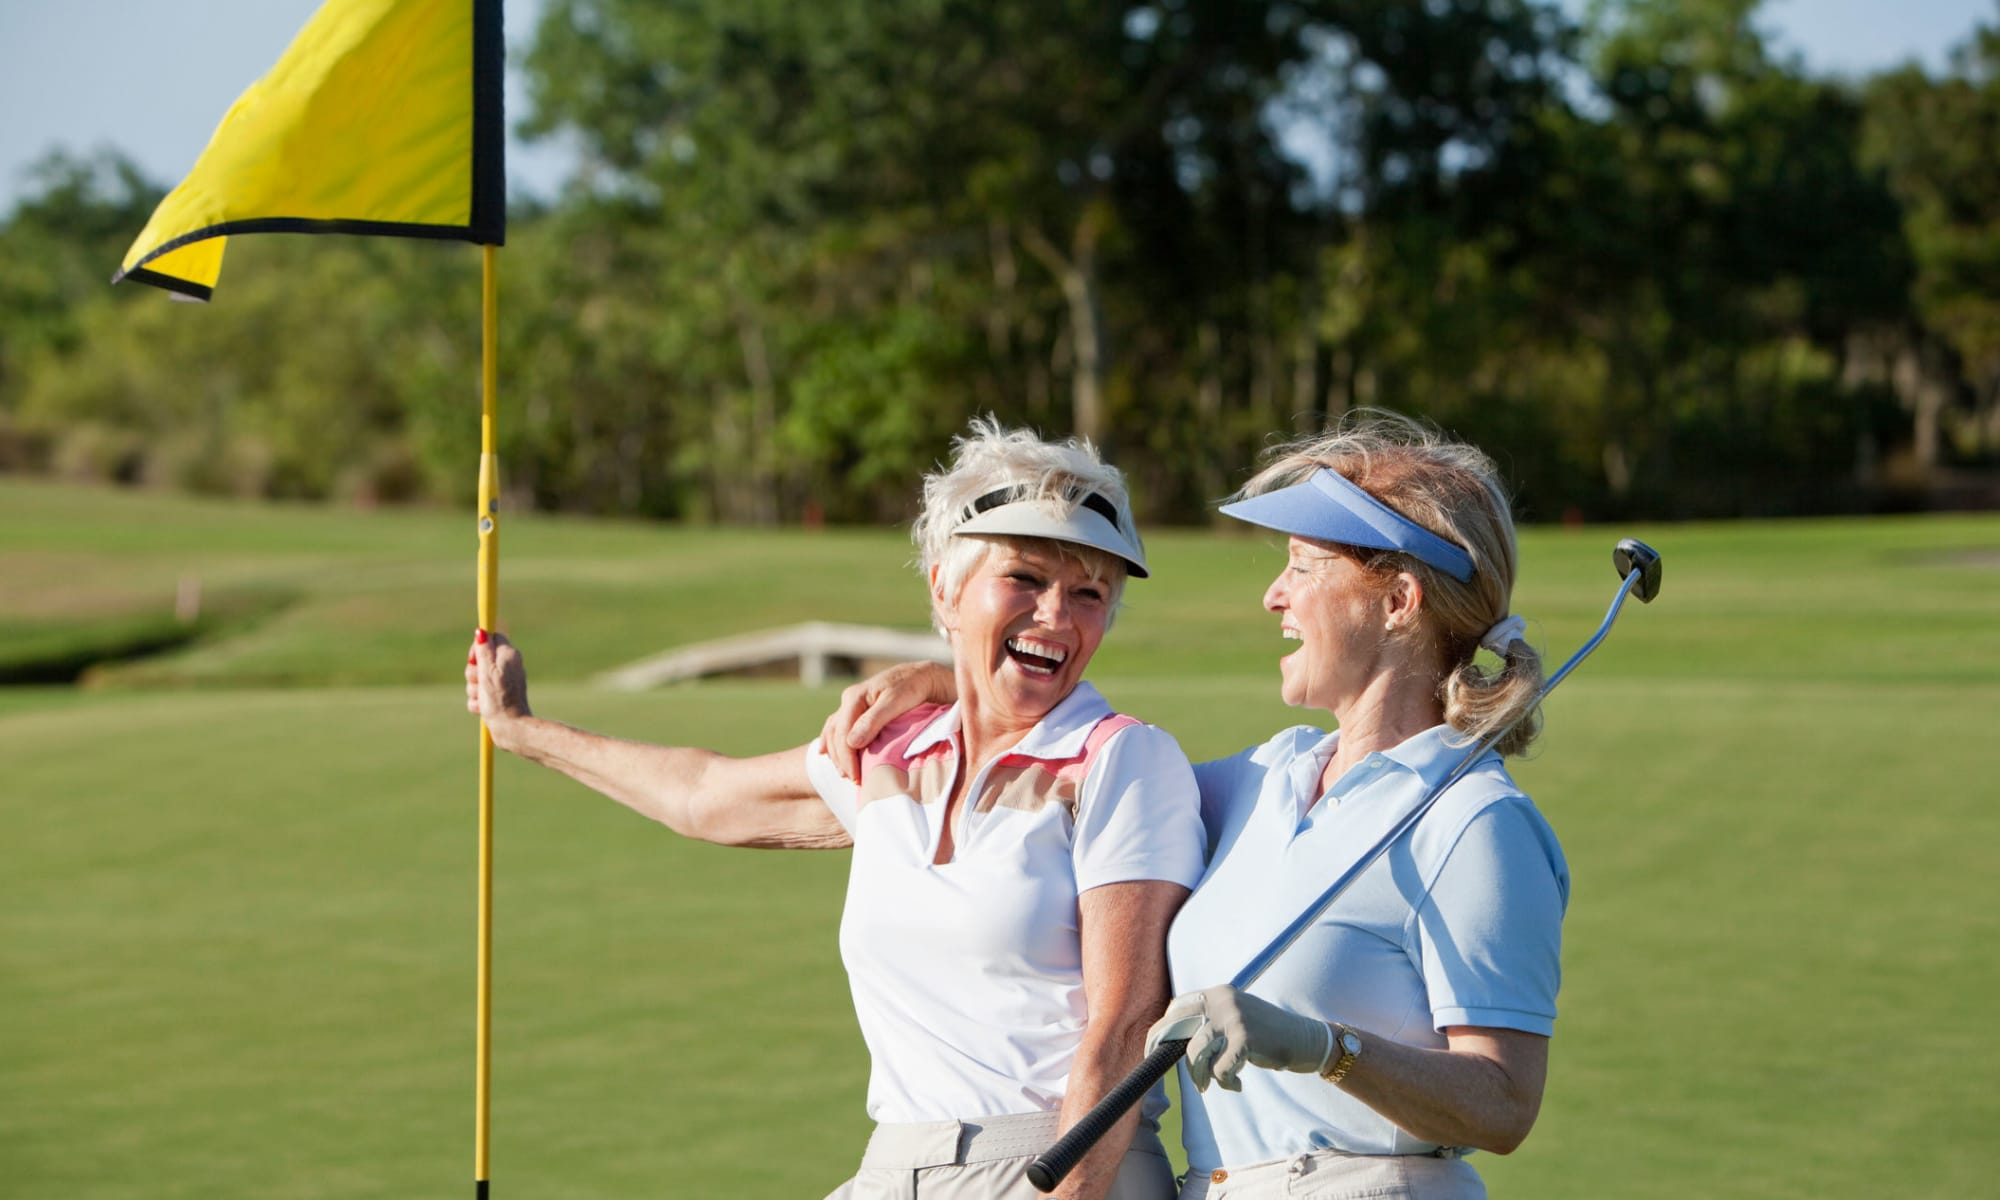 62 and Over Co-Op Community at Applewood Pointe Prior Lake in Prior Lake, Minnesota.